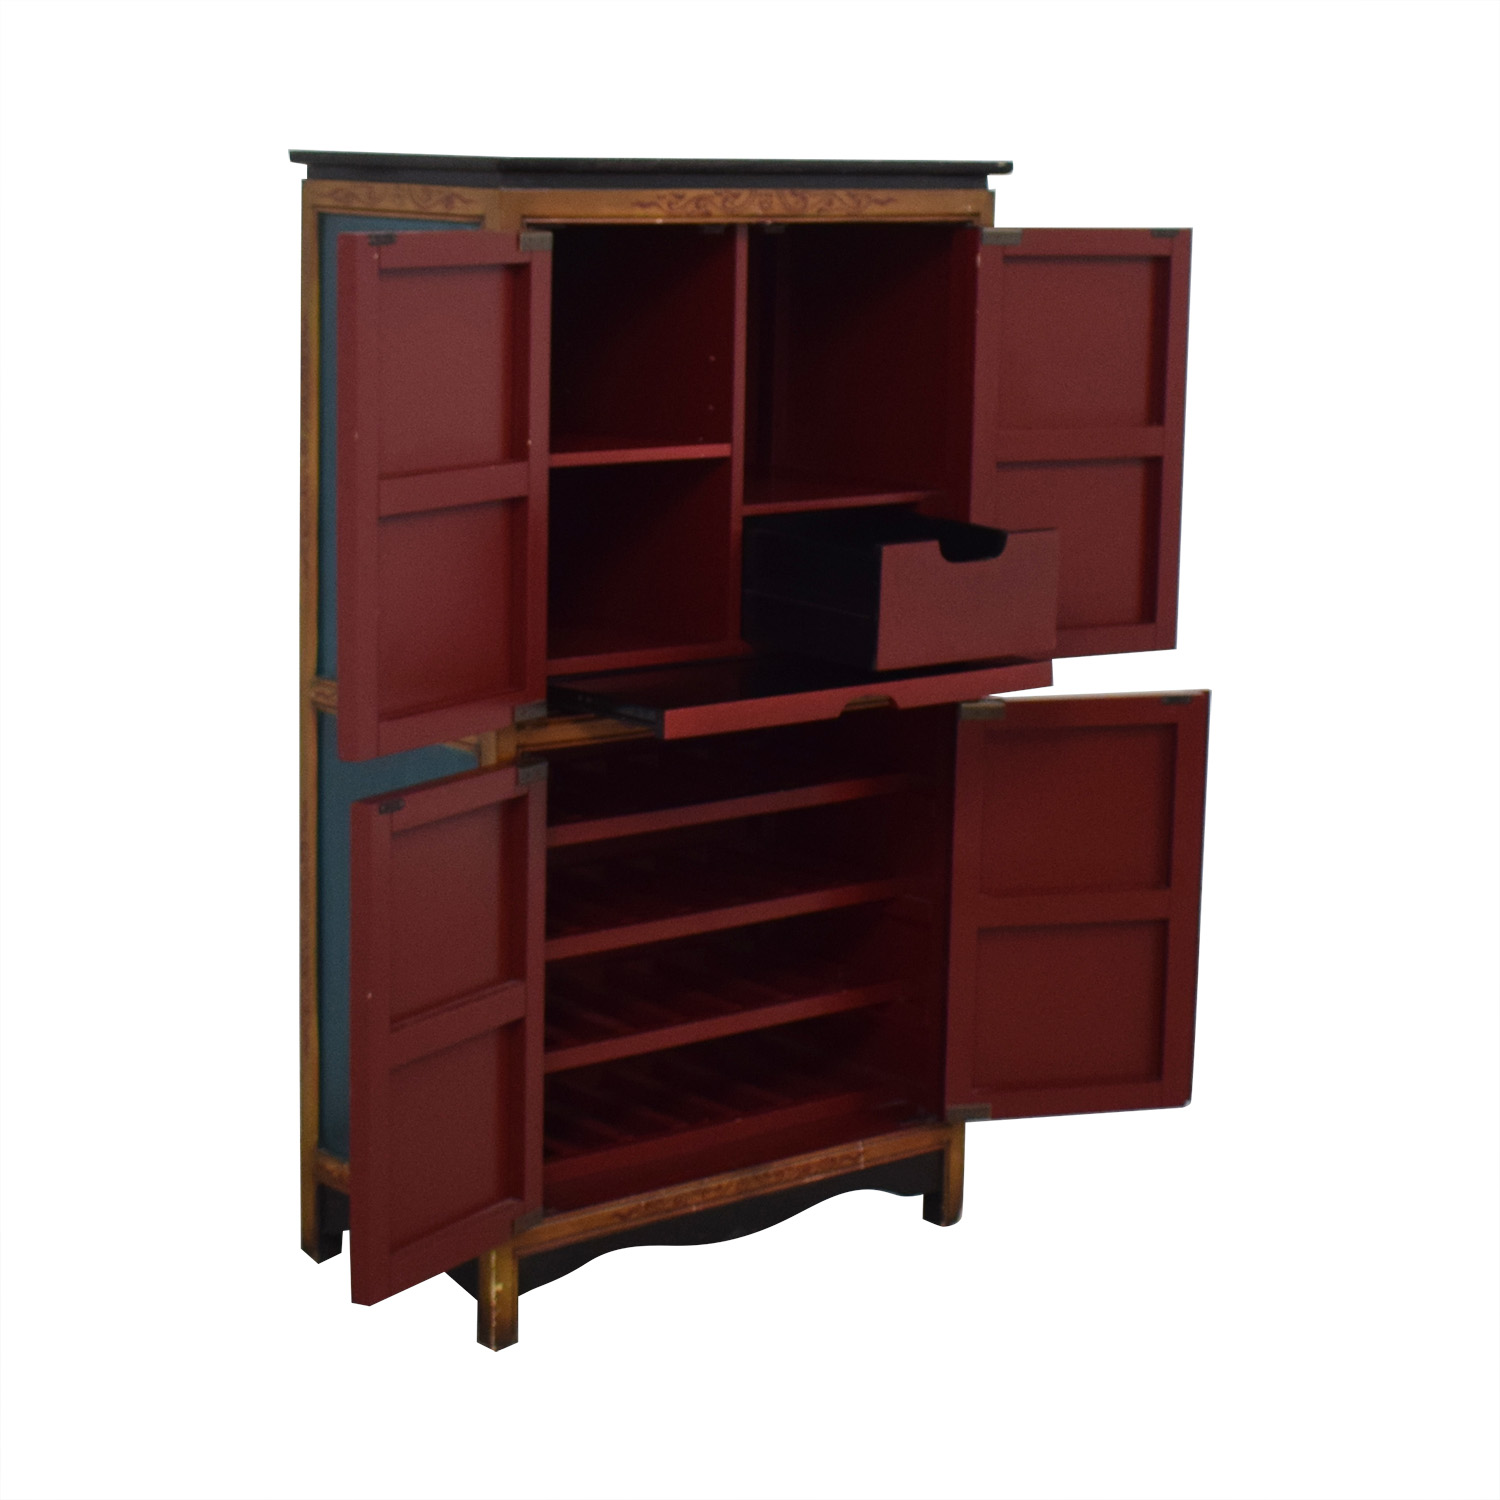 Pier 1 Decorative Wine Cabinet / Storage